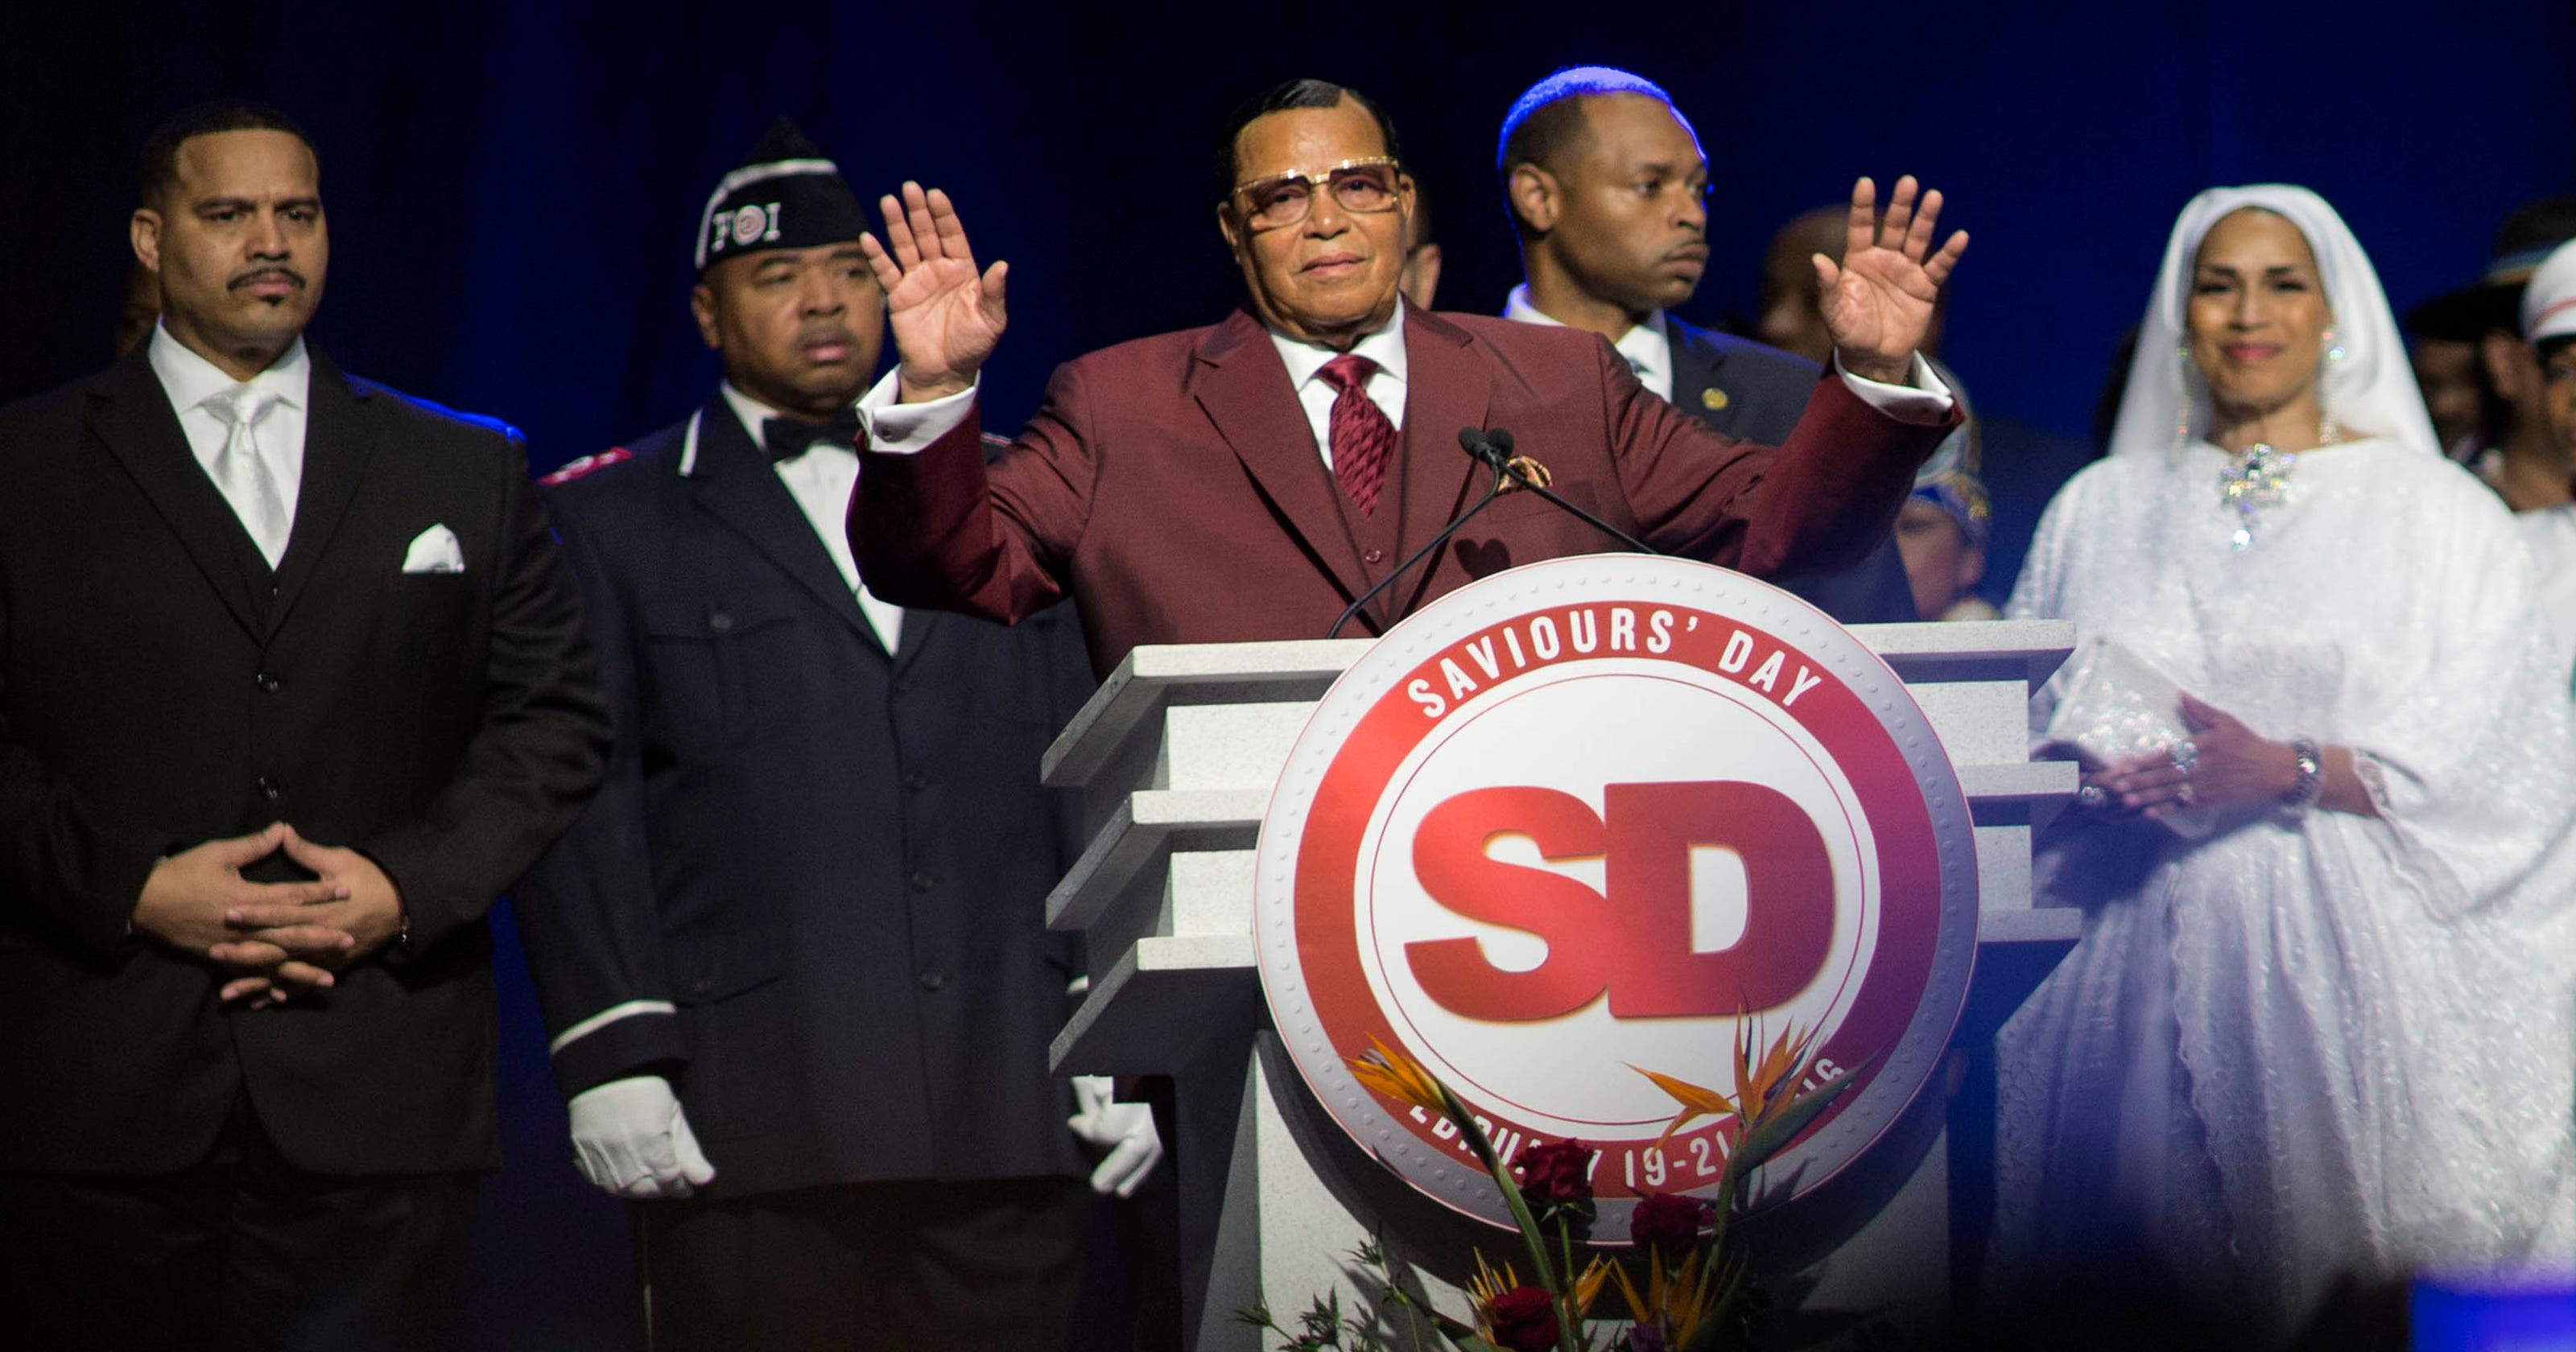 30,000 expected at Nation of Islam convention in Detroit